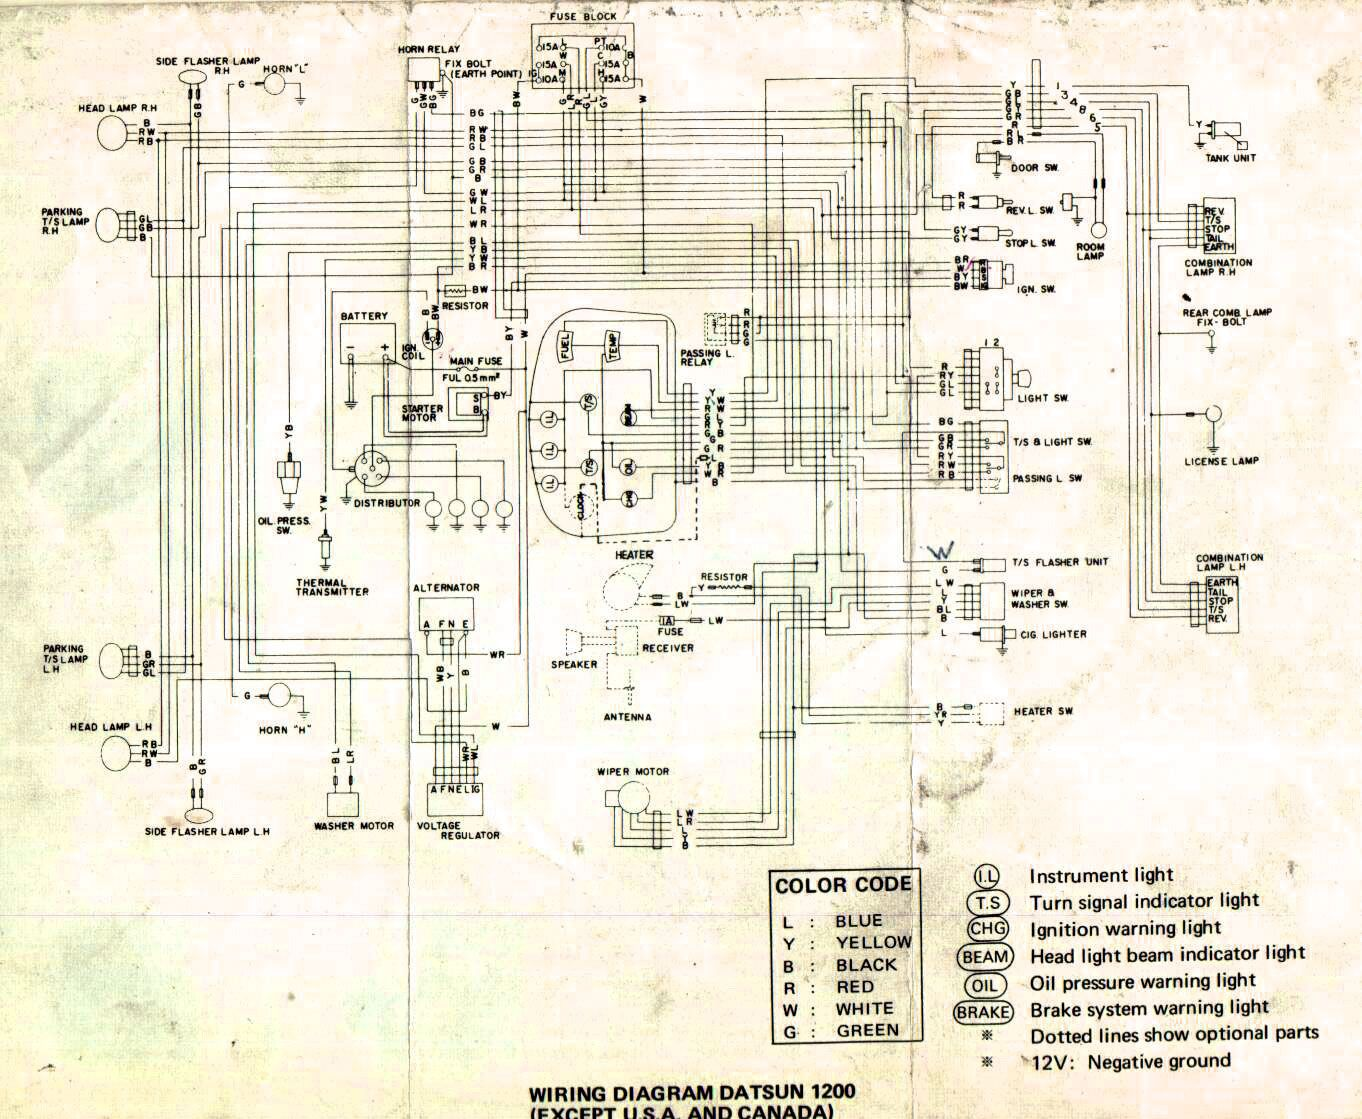 Nissan 1400 Electrical Wiring Diagram : Wiring diagram for nissan bakkie